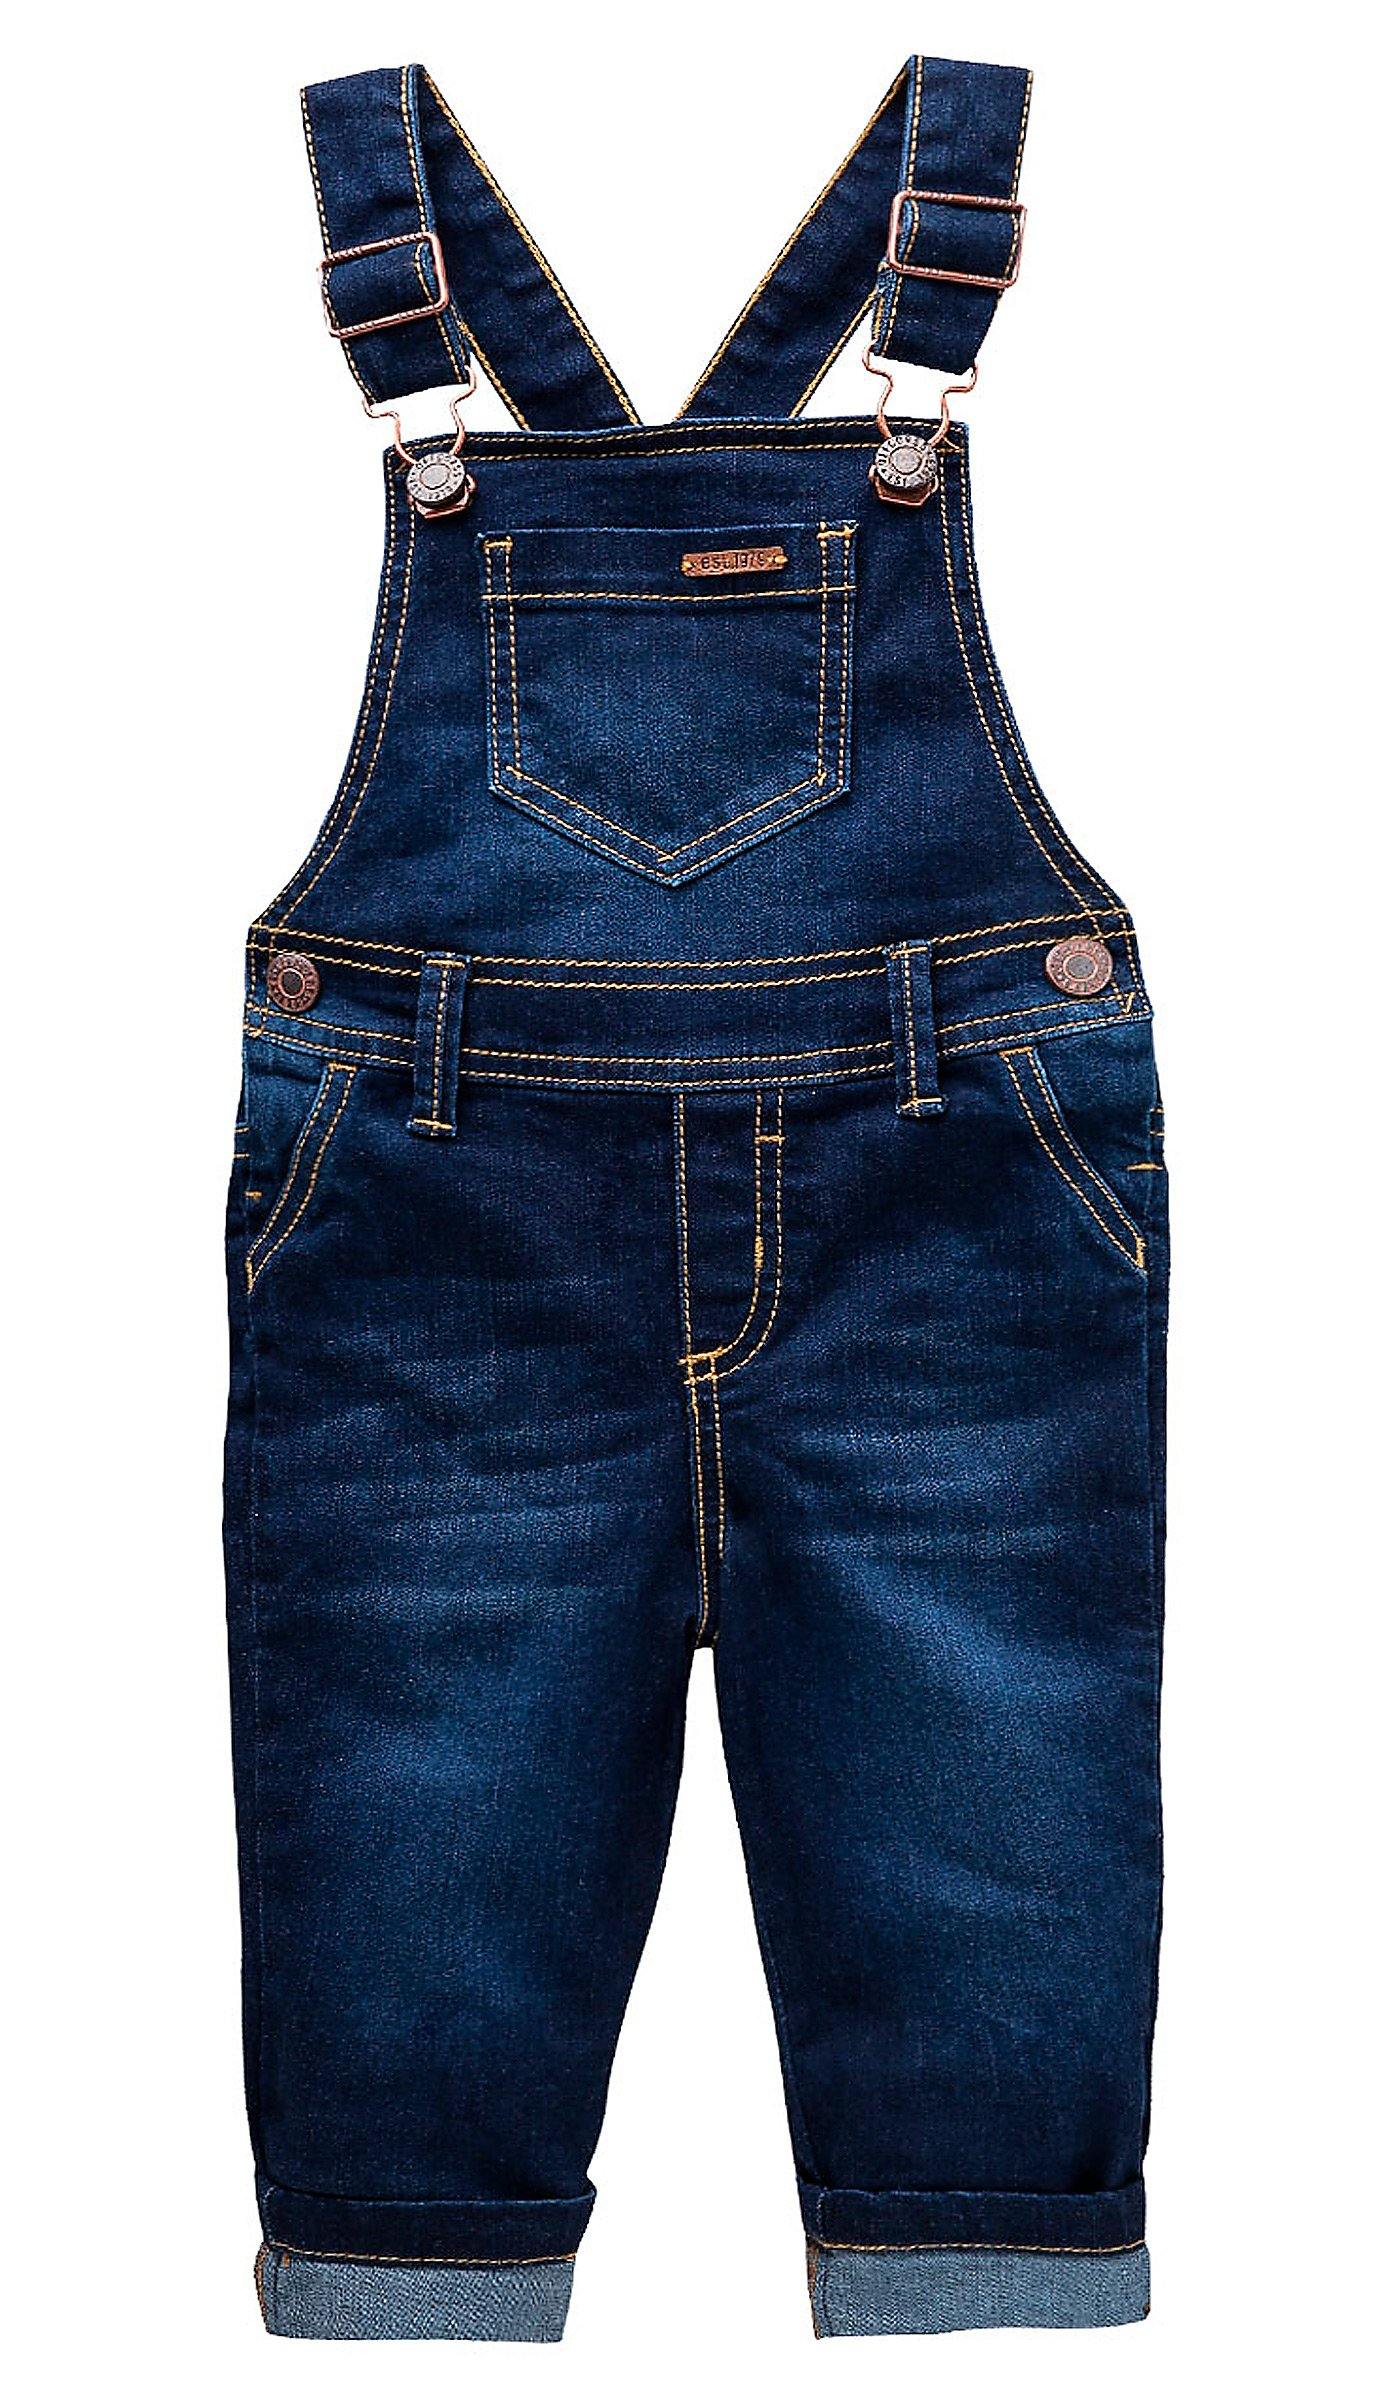 OFFCORSS Toddler Boys Kids Infant Bib Matching Brother Twin Jean Denim Cotton Cute Long Overalls Dungarees with Hooks Overol Para Niños Dark Blue 2T